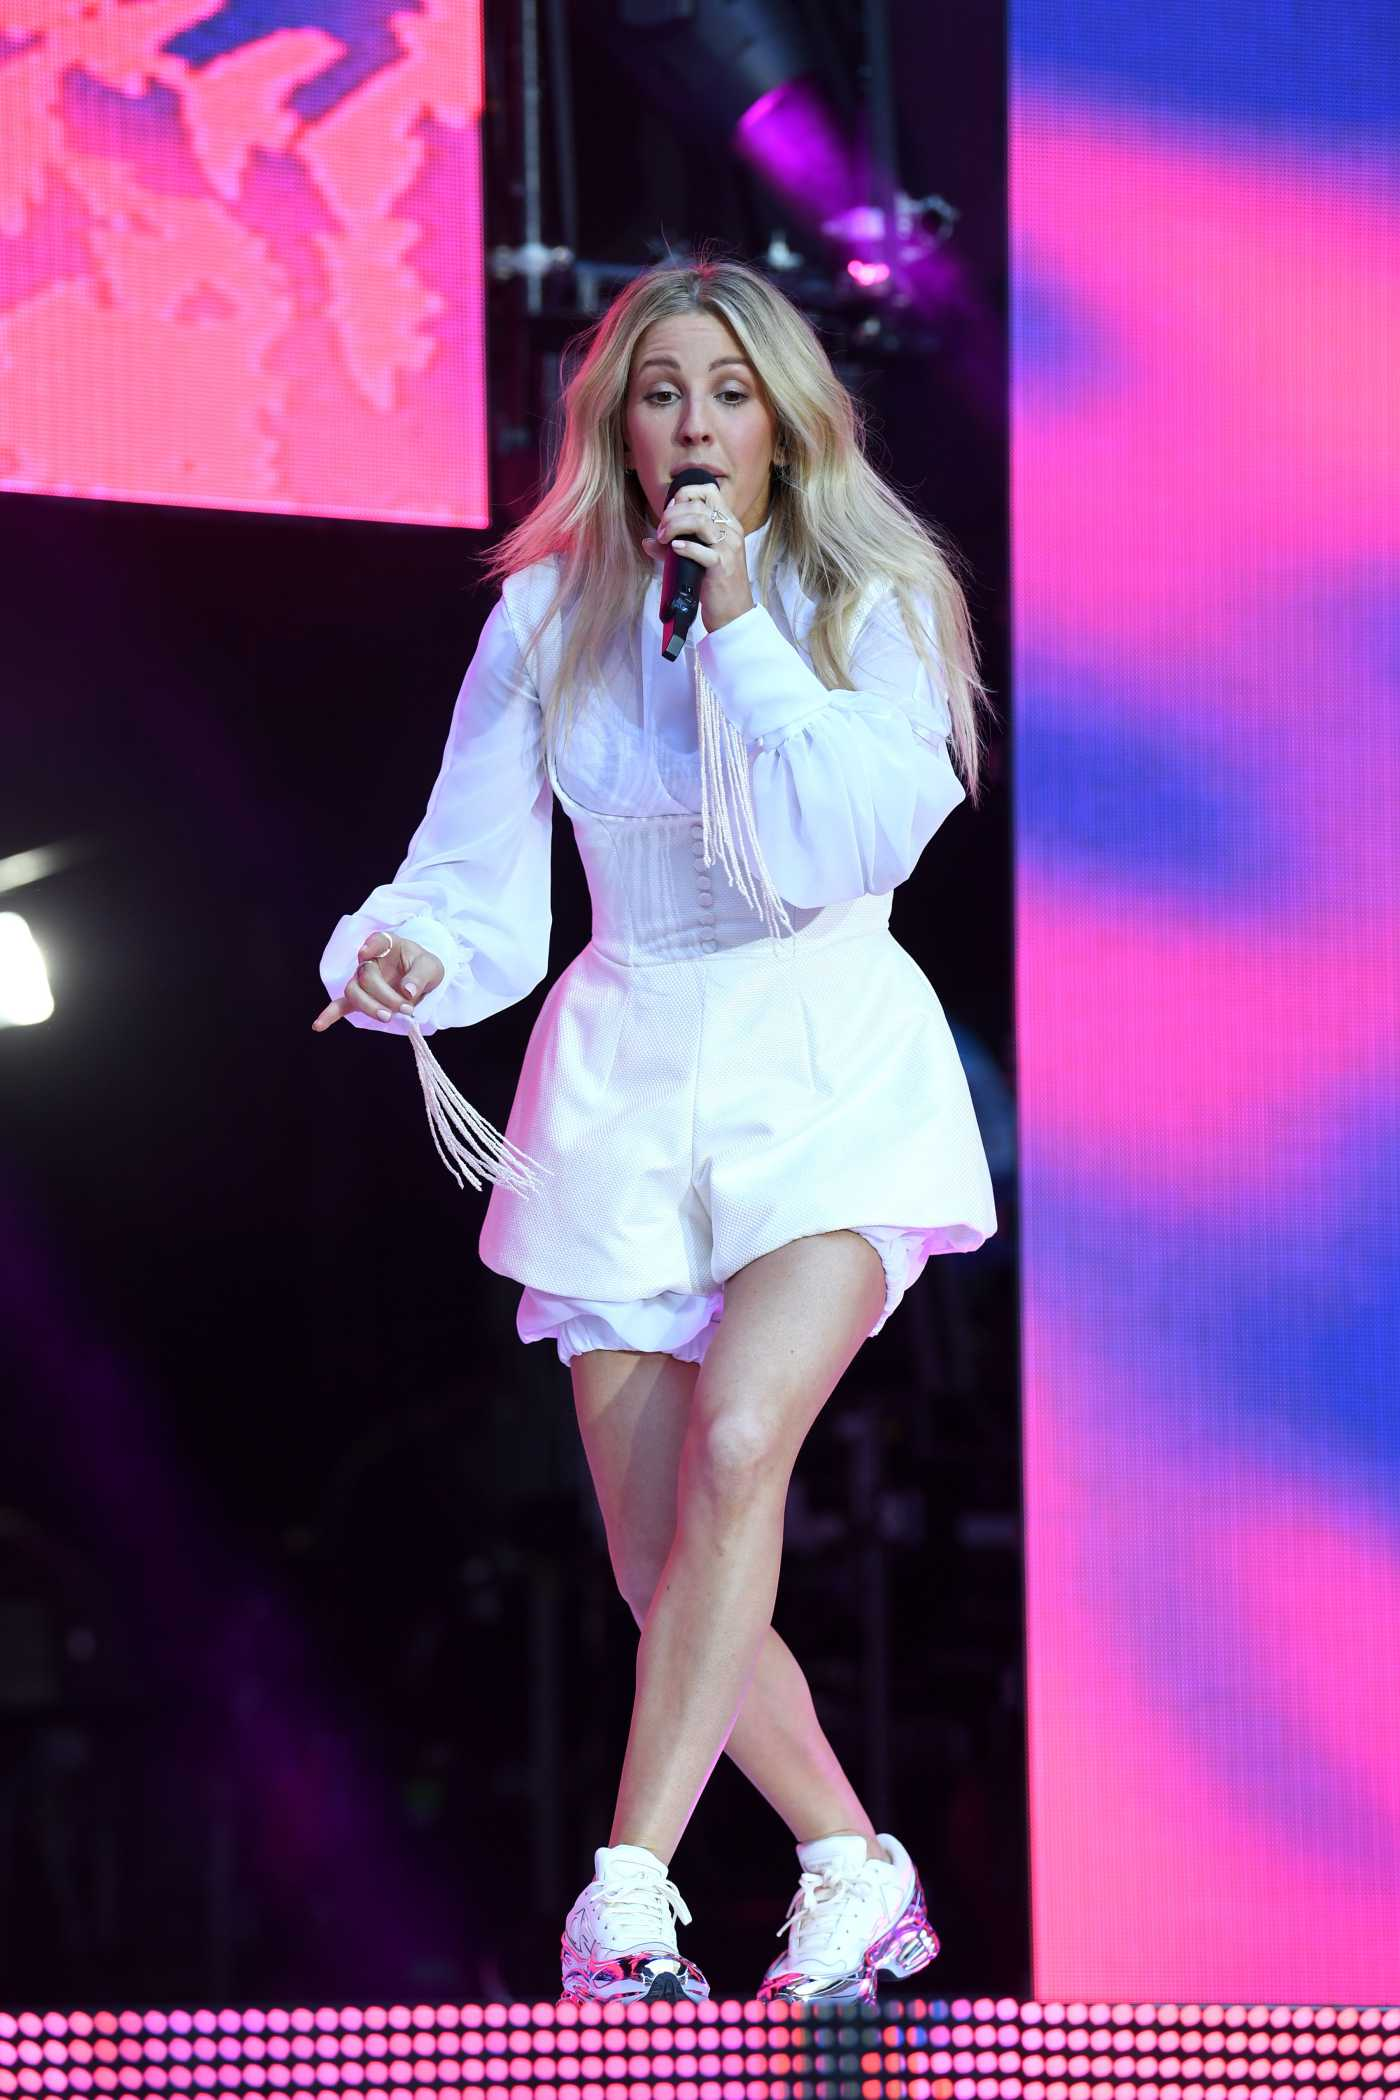 Ellie Goulding Performs During 2019 Capital FM Summertime Ball in London 06/08/2019